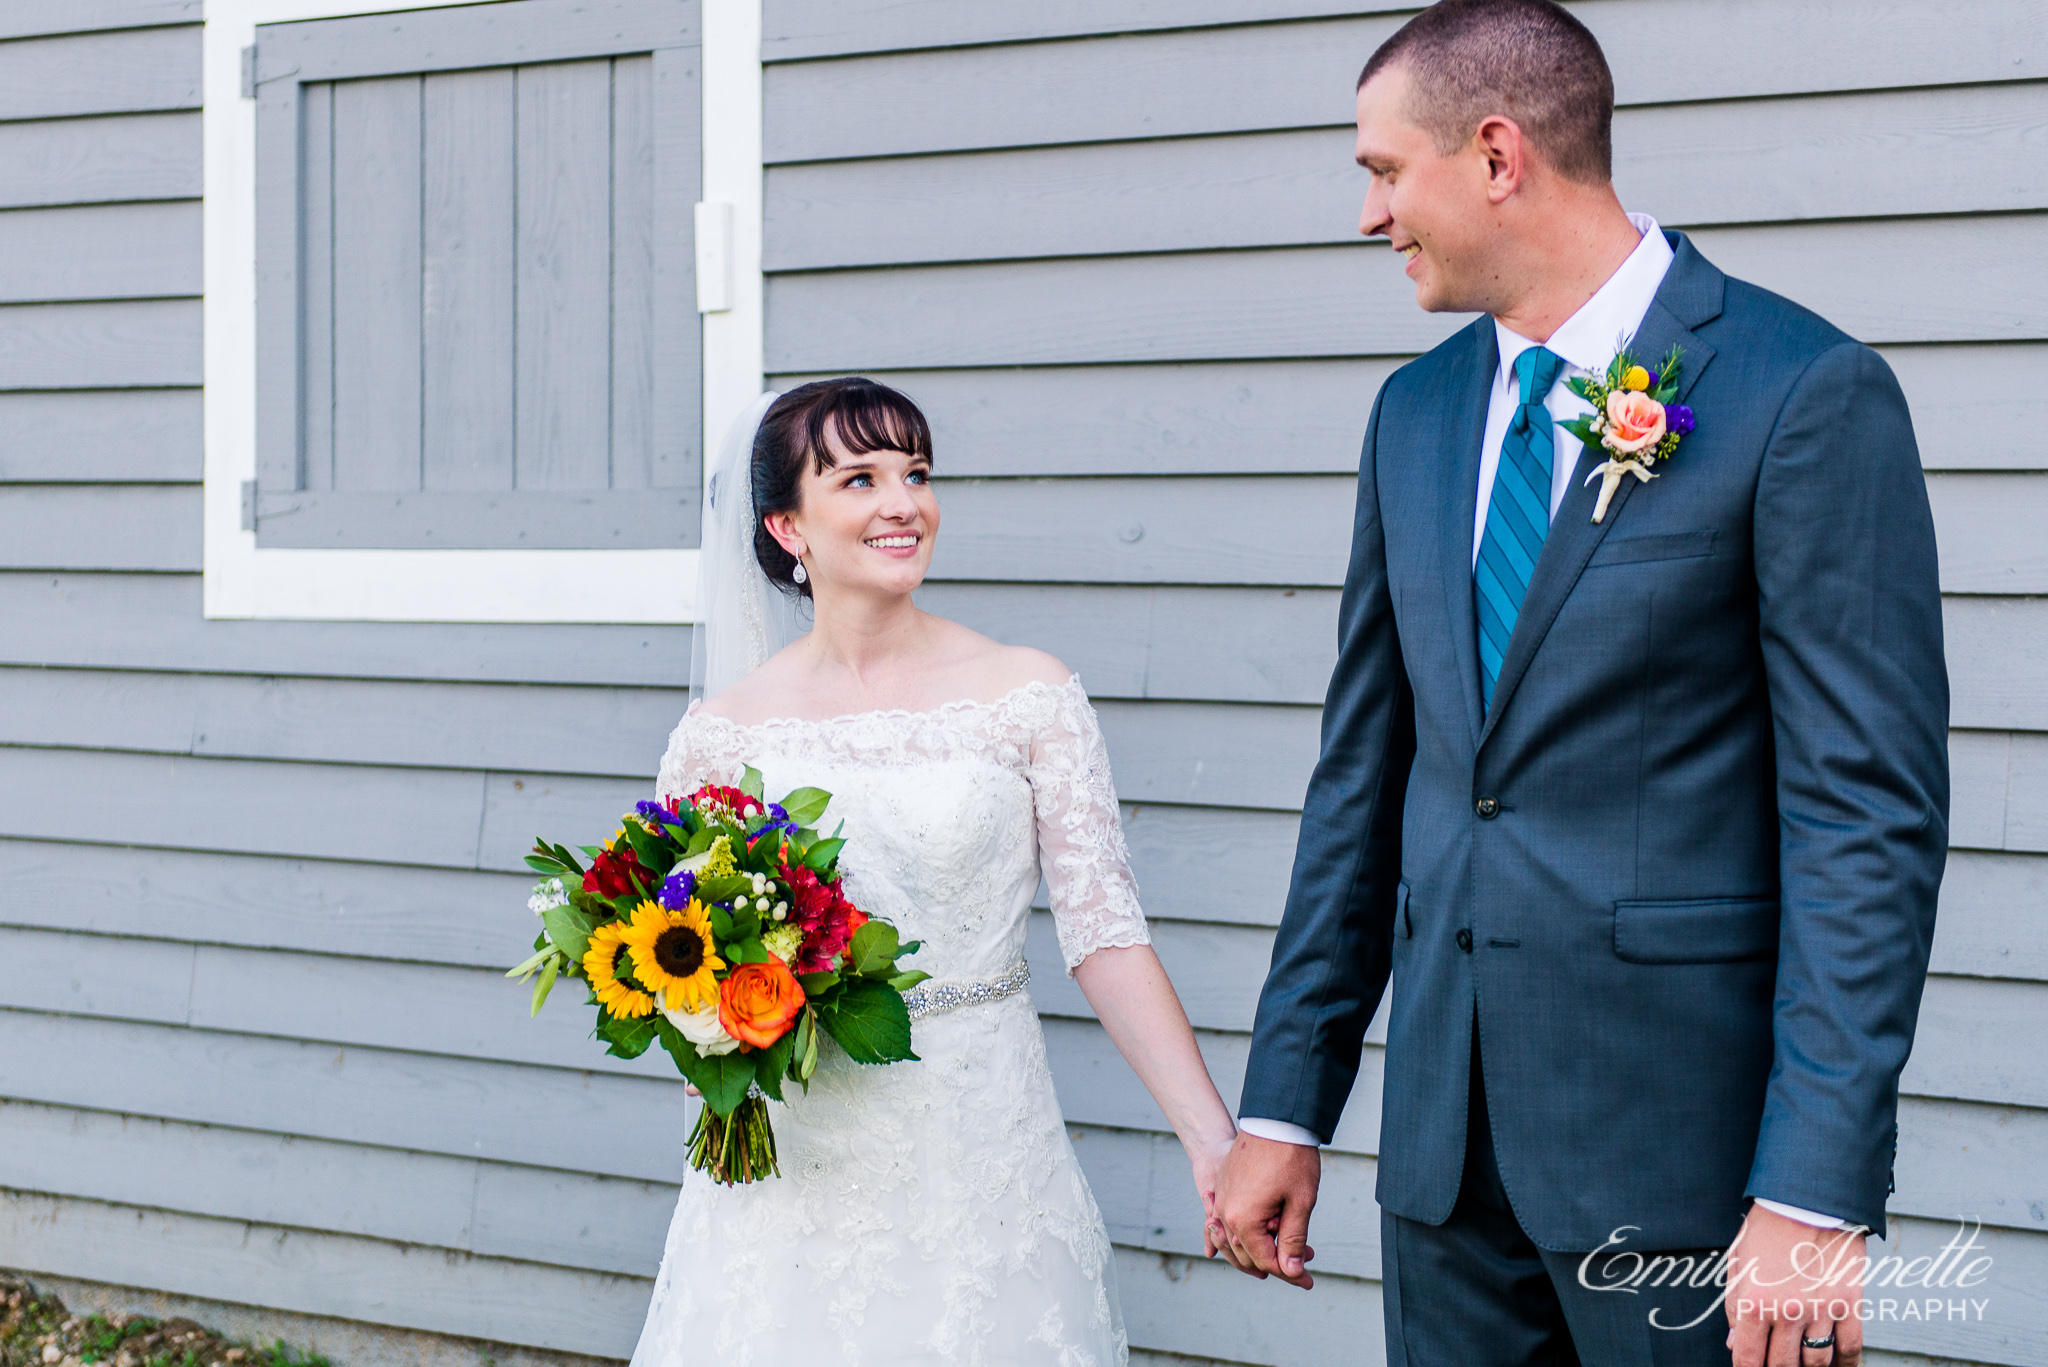 A bride and groom hold hands and smile at each other after their country wedding at Amber Grove near Richmond, Virginia